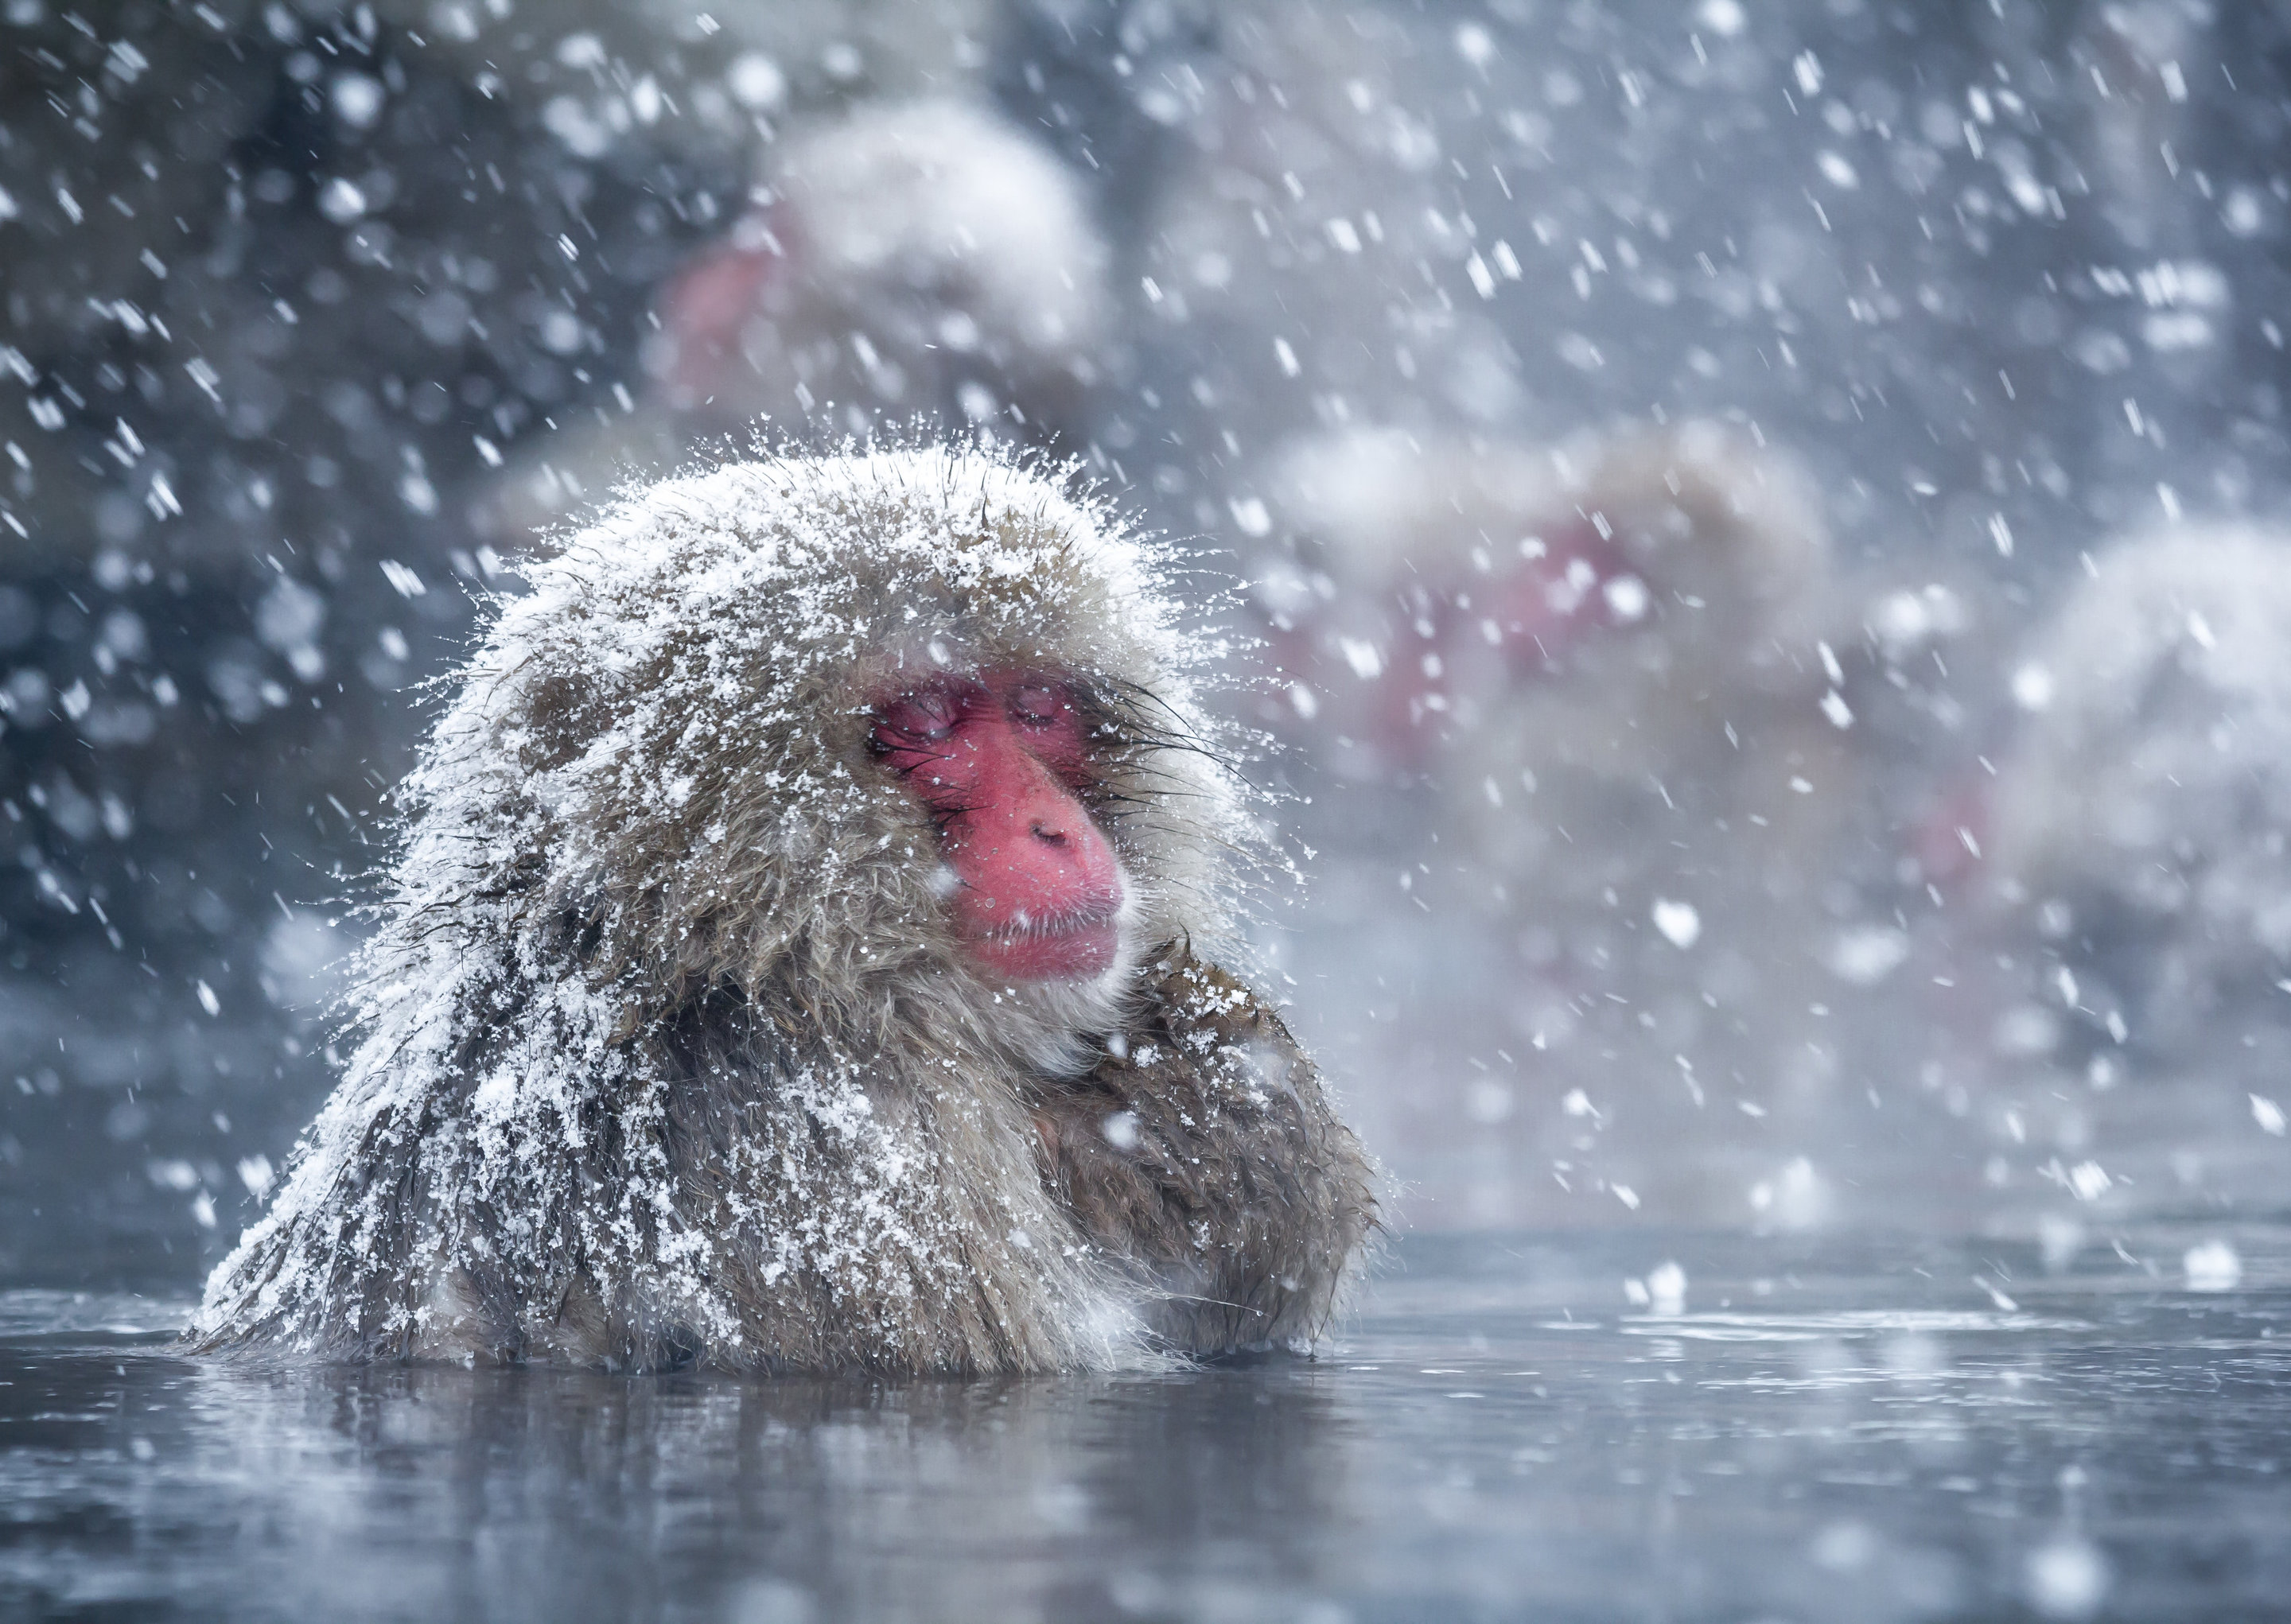 Spa therapy helps Japan's snow monkeys cope with the cold - photo#20